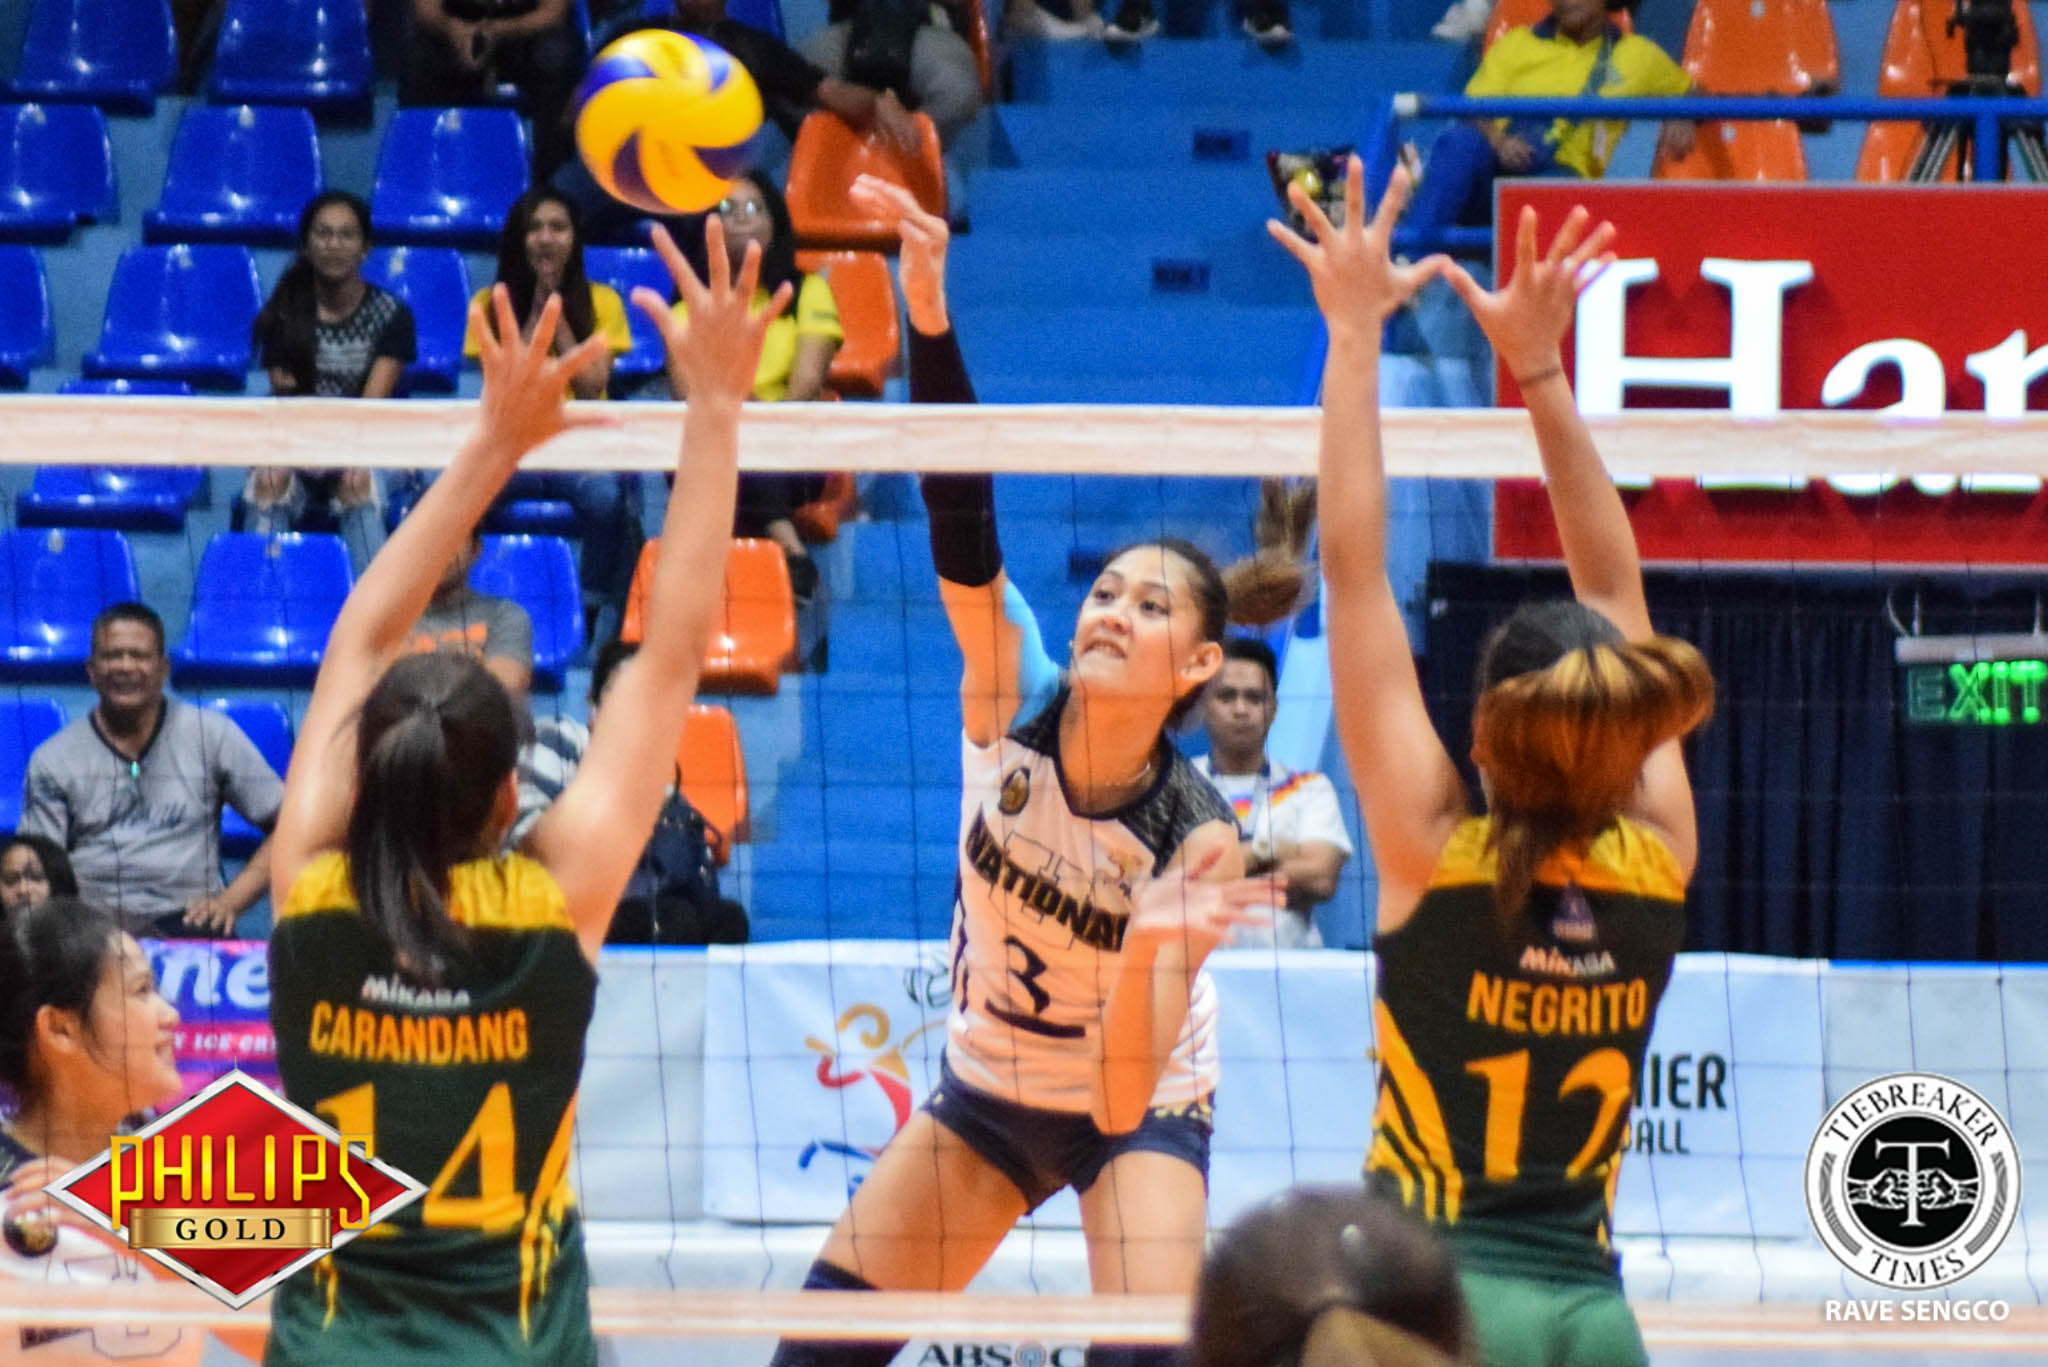 Tiebreaker Times Three-peat in Sight: Lady Bulldogs escape Lady Tams to take Game One FEU News NU PVL Volleyball  Risa Sato NU Women's Volleyball Jeanette Villareal Jasmine Nabor Jaja Santiago George Pascua Gayle Valdez FEU Women's Volleyball Czarina Carandag Babes Castillo 2017 PVL Women's Collegiate Conference 2017 PVL Season